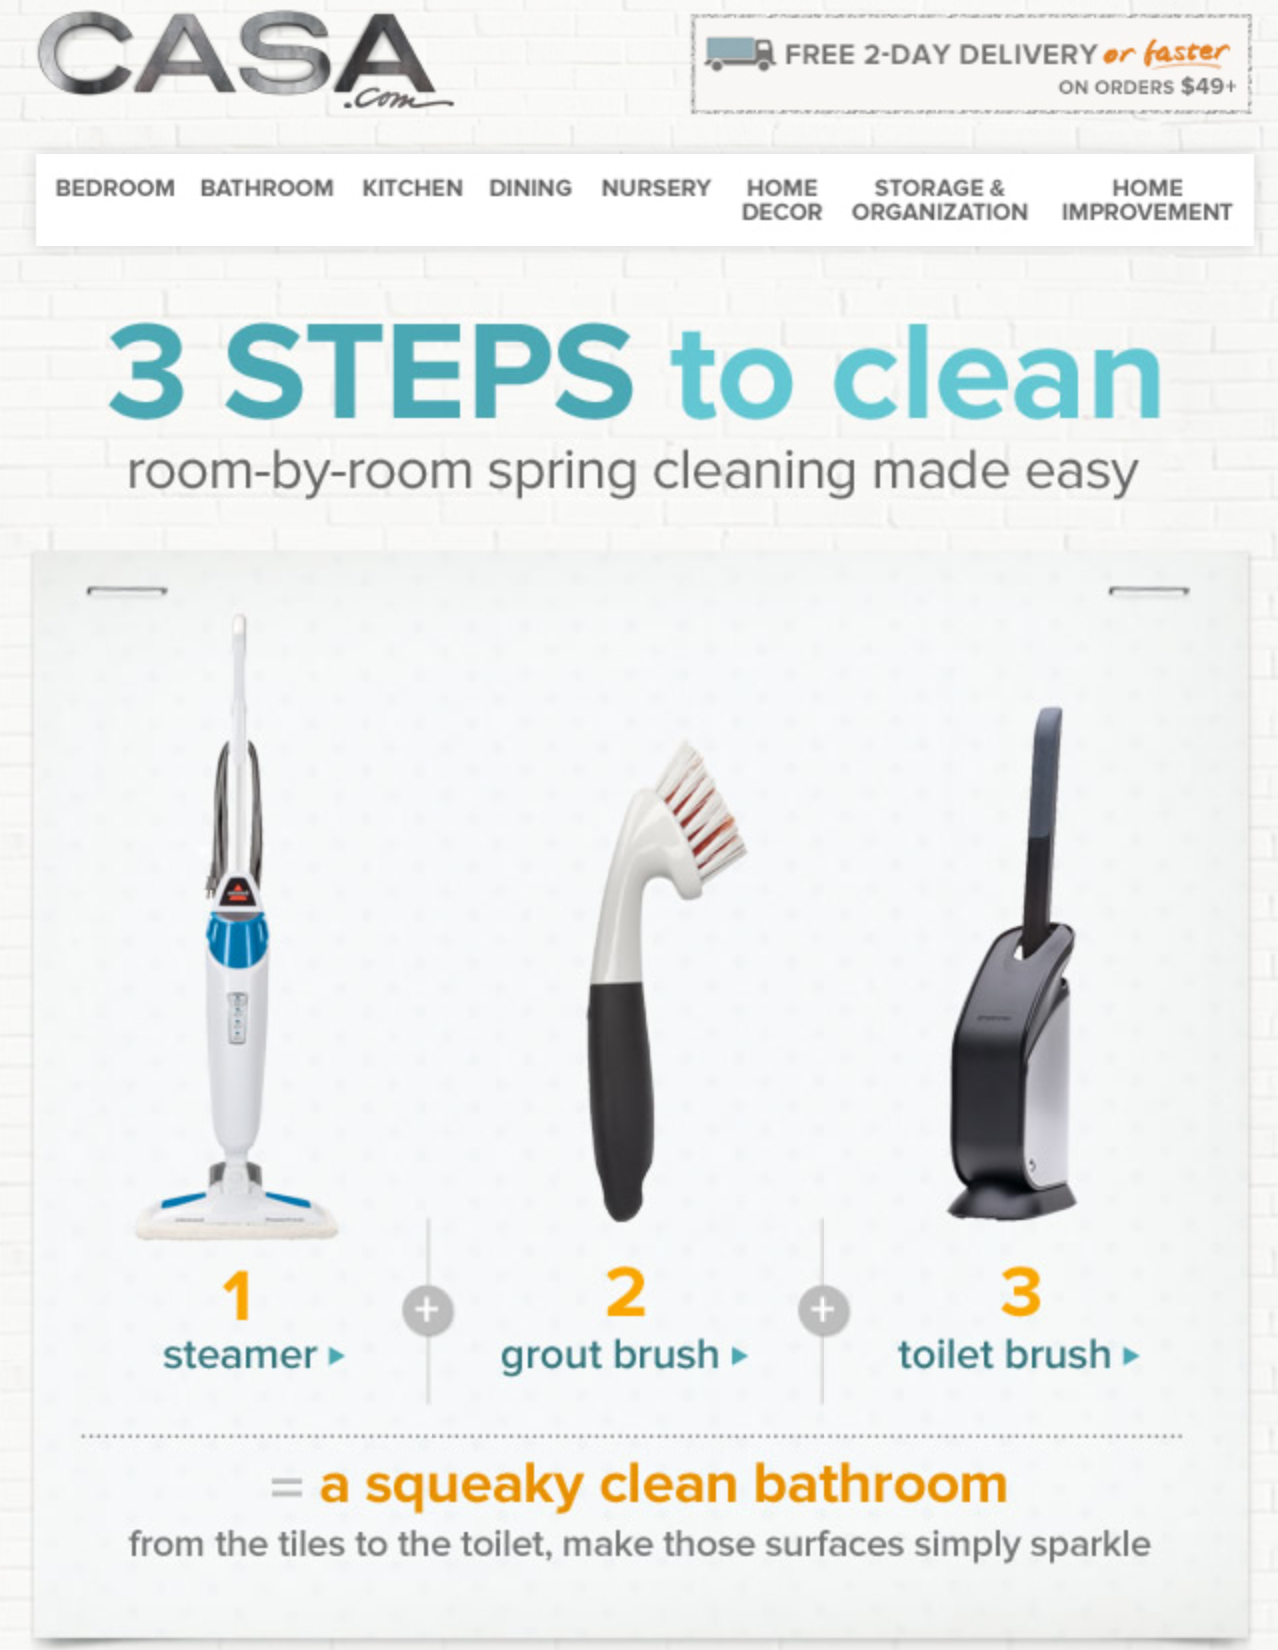 Email: 3 Steps to Clean